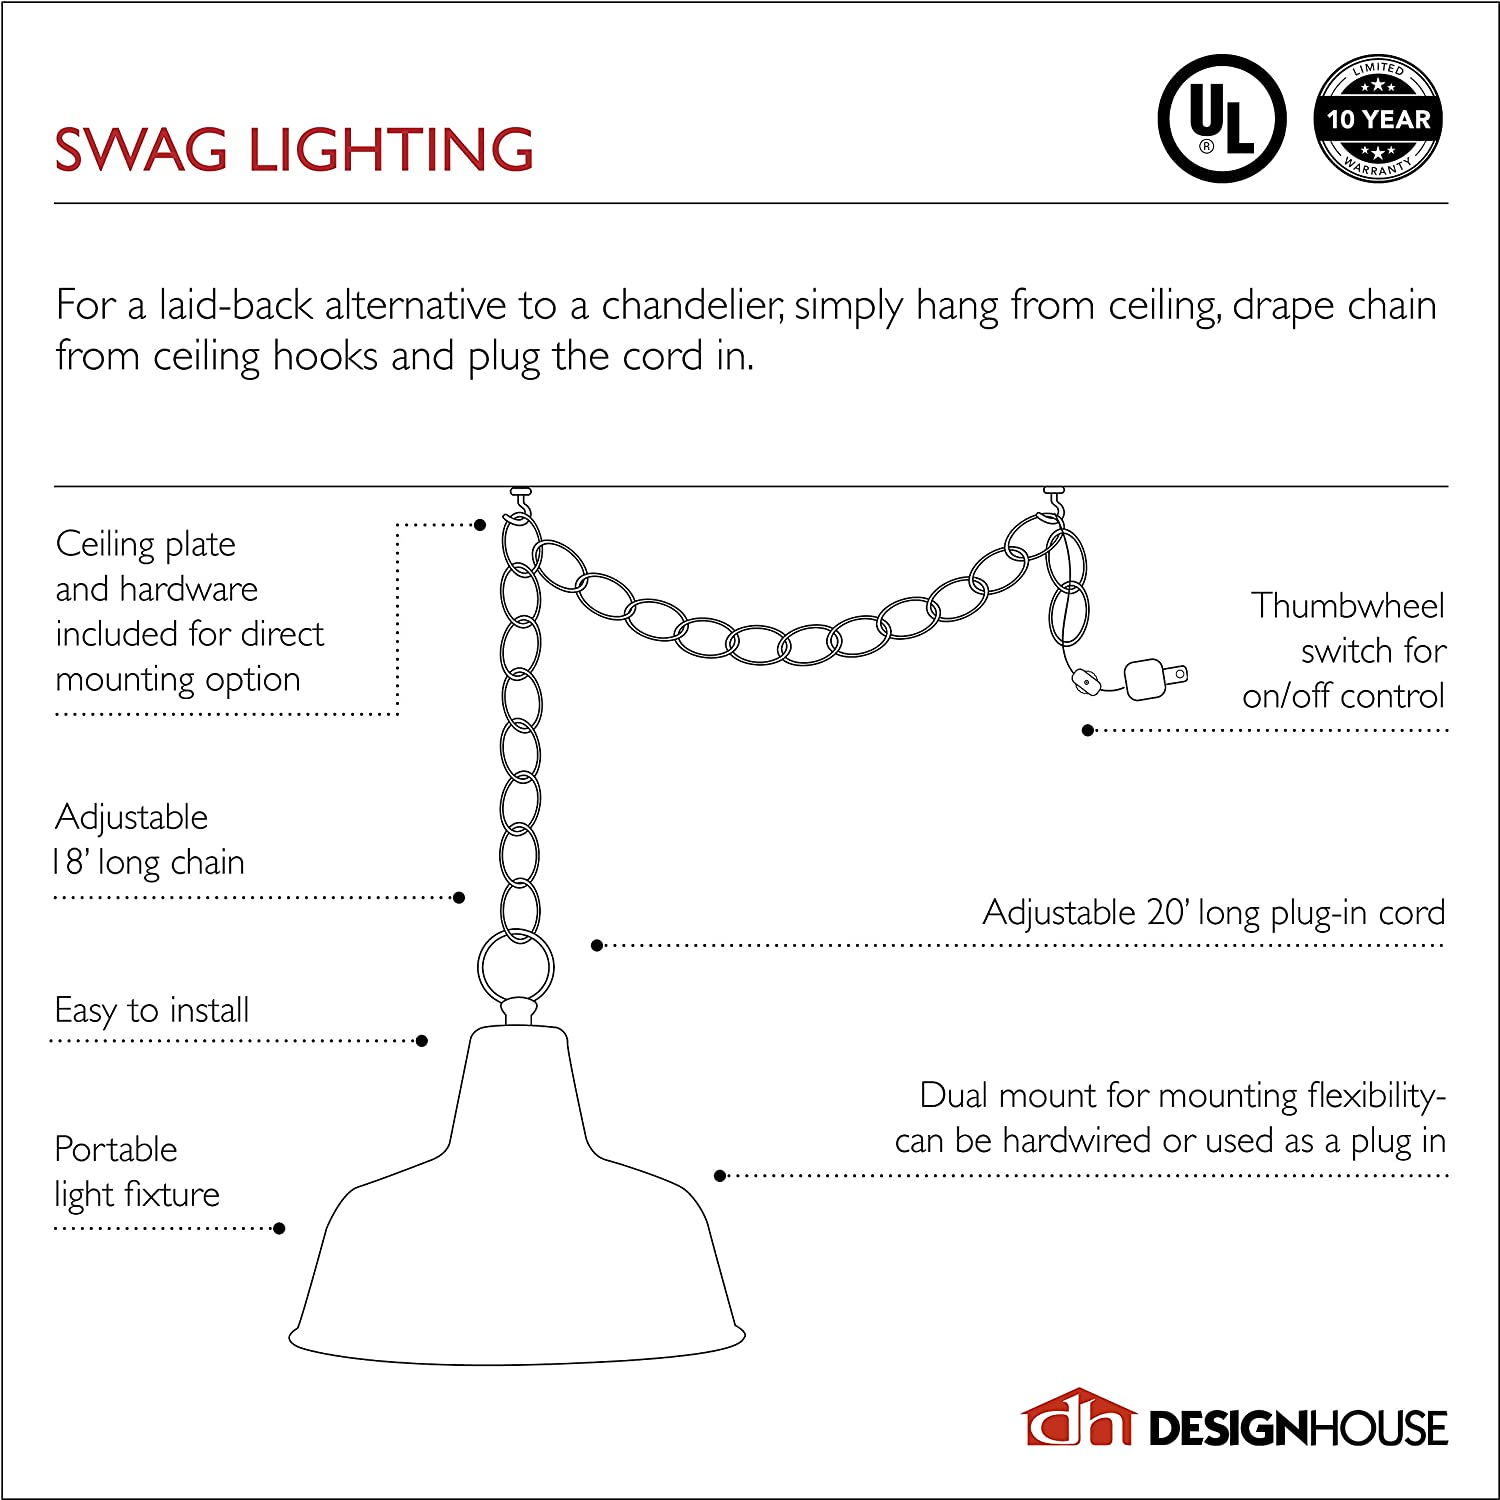 Design House 517664 Millbridge Traditional 1 Indoor Hanging Swag Light with Alabaster Glass Shade for Living Dining Room Bar Area, Oil Rubbed Bronze - Ceiling Pendant Fixtures -